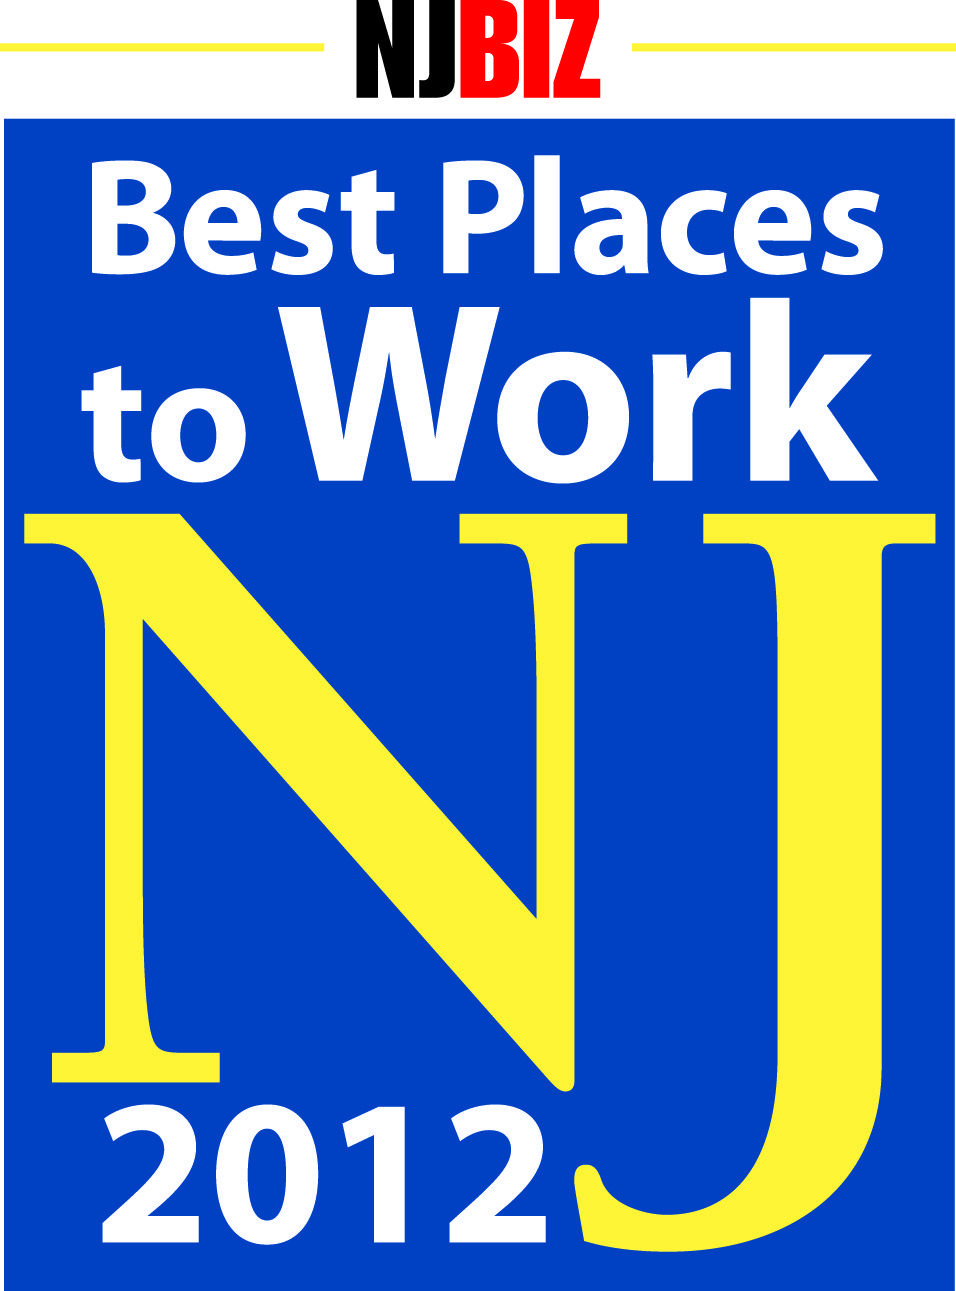 places in new jersey Bing Images Best places to work